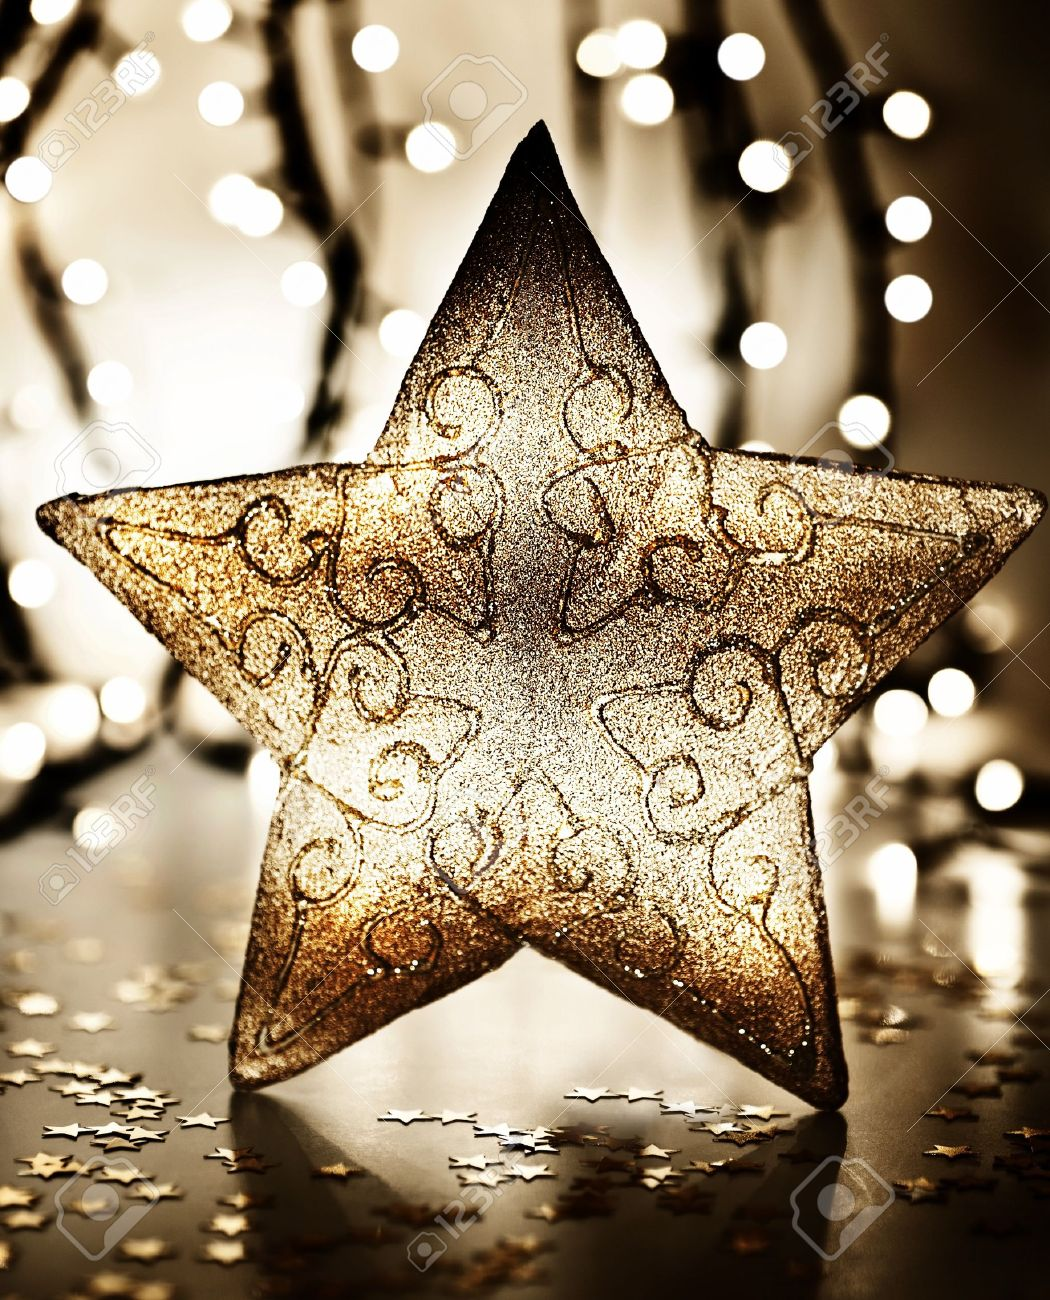 Brown christmas tree ornaments - Star Christmas Tree Ornament Golden Decoration Over Blur Lights Dark New Year Eve